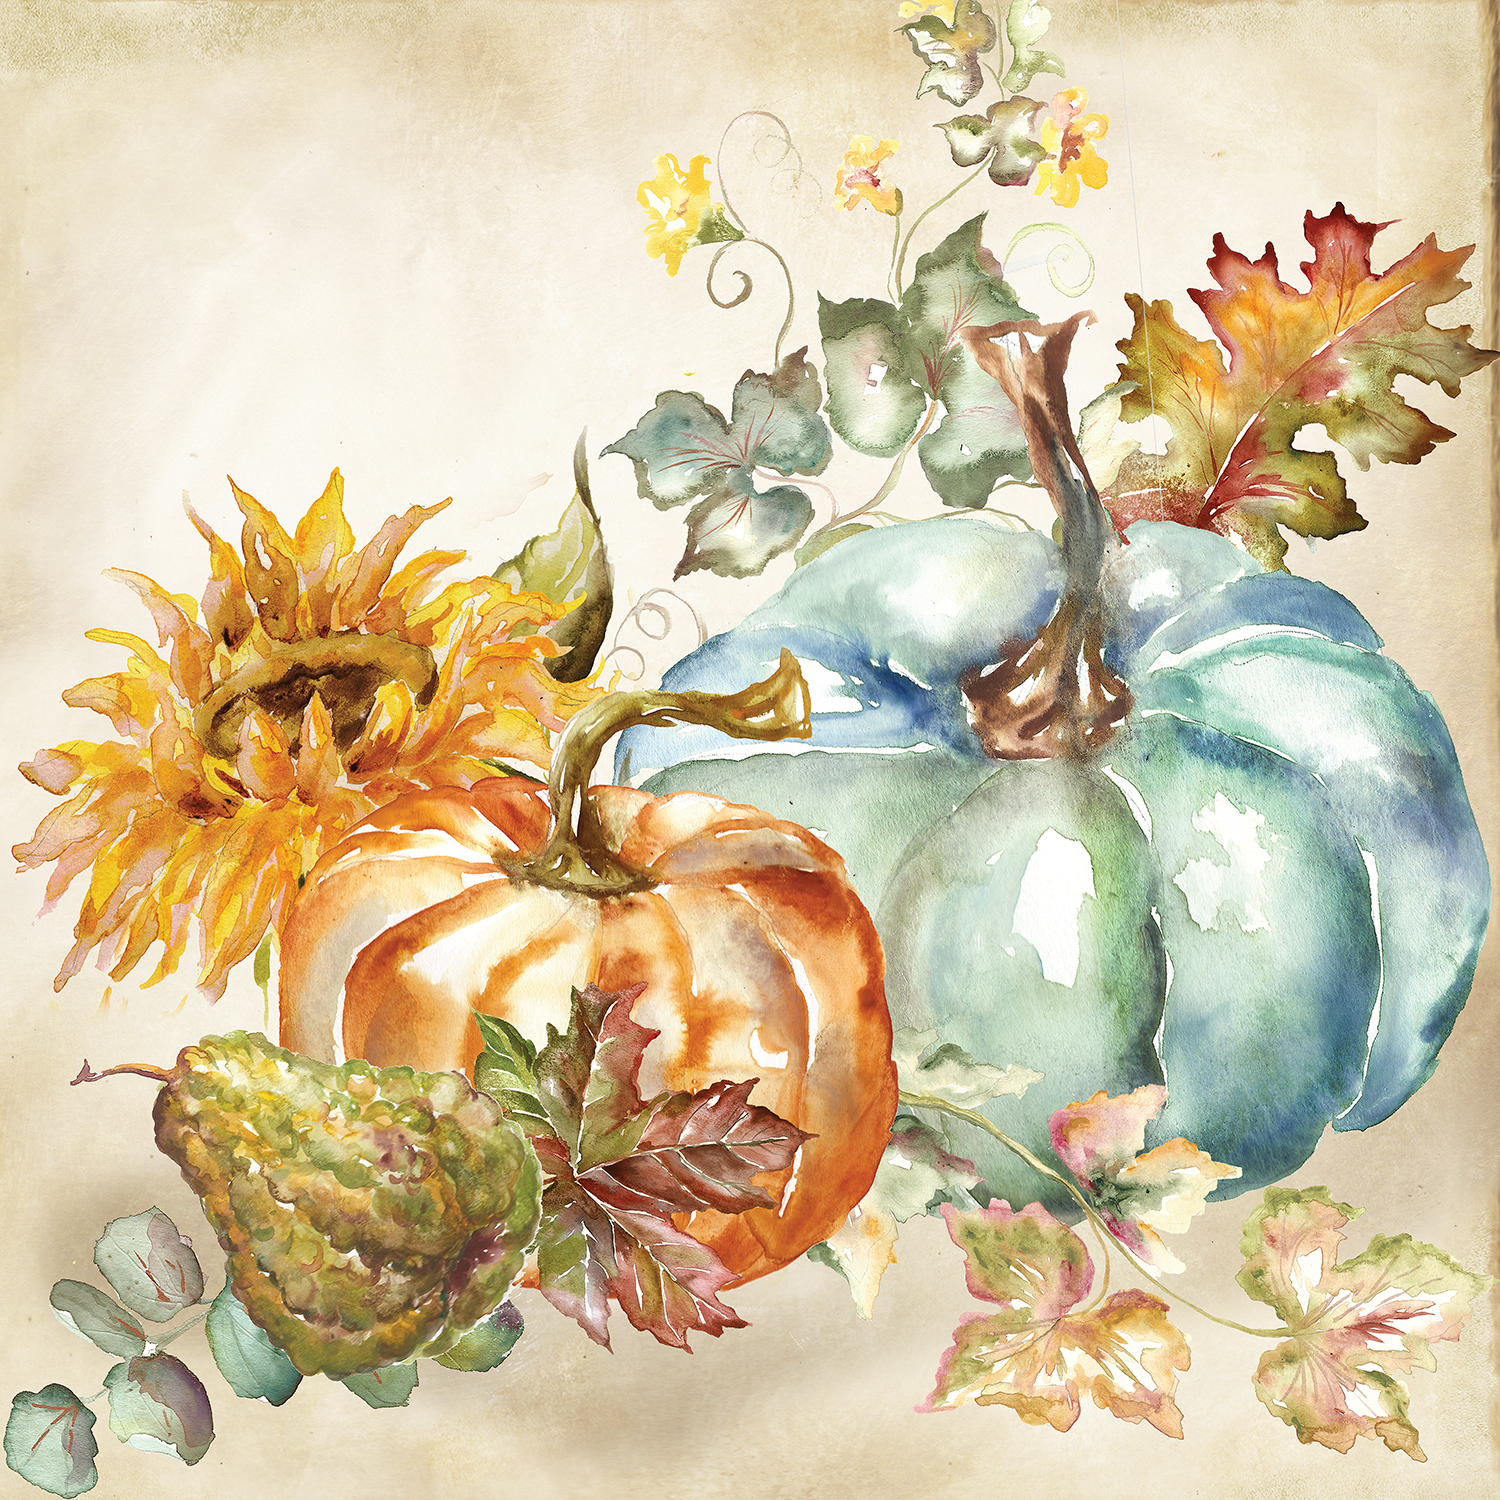 Watercolor pumpkins with sunflower, fall leaves, and pear